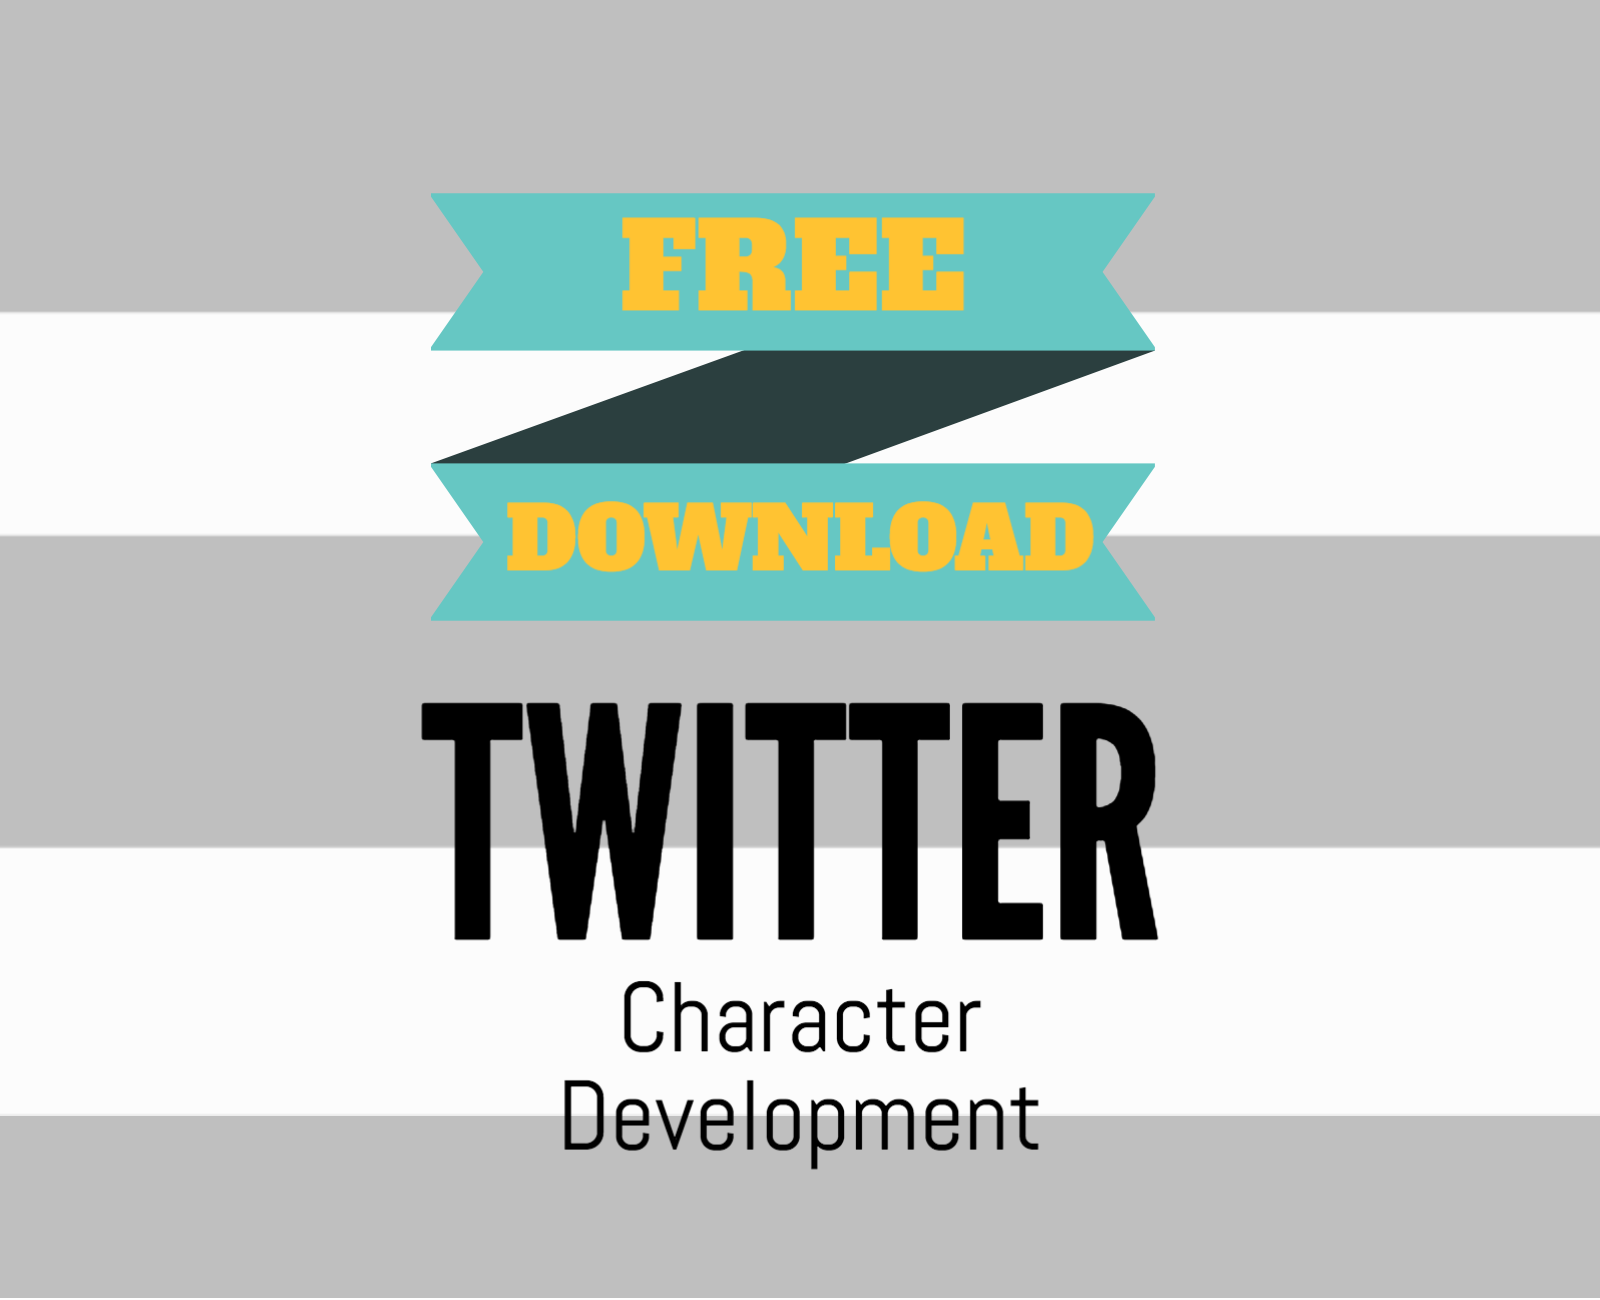 Free Download Twitter Character Development Worksheet